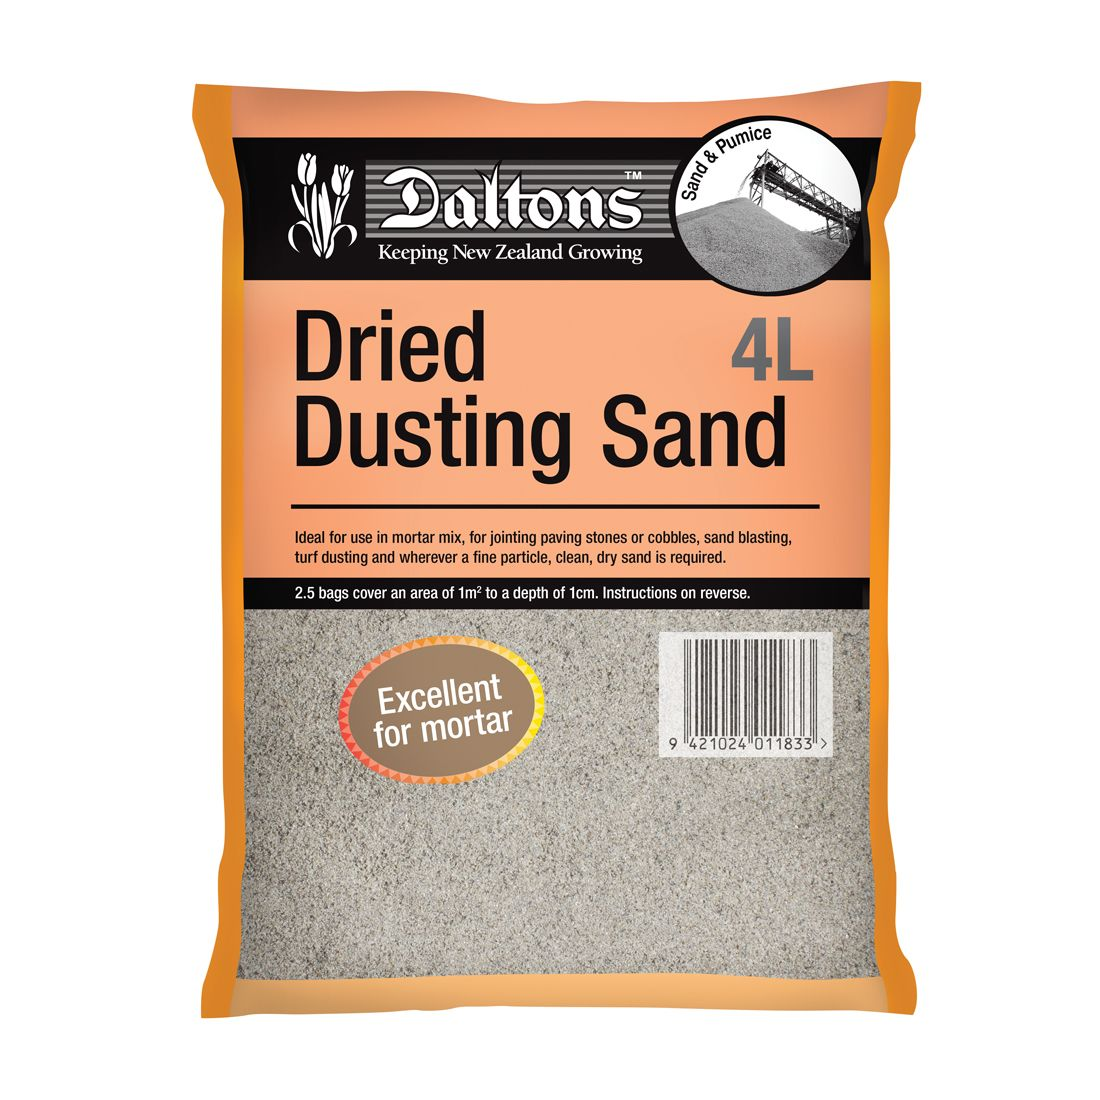 Dried Dusting Sand 4L Bag